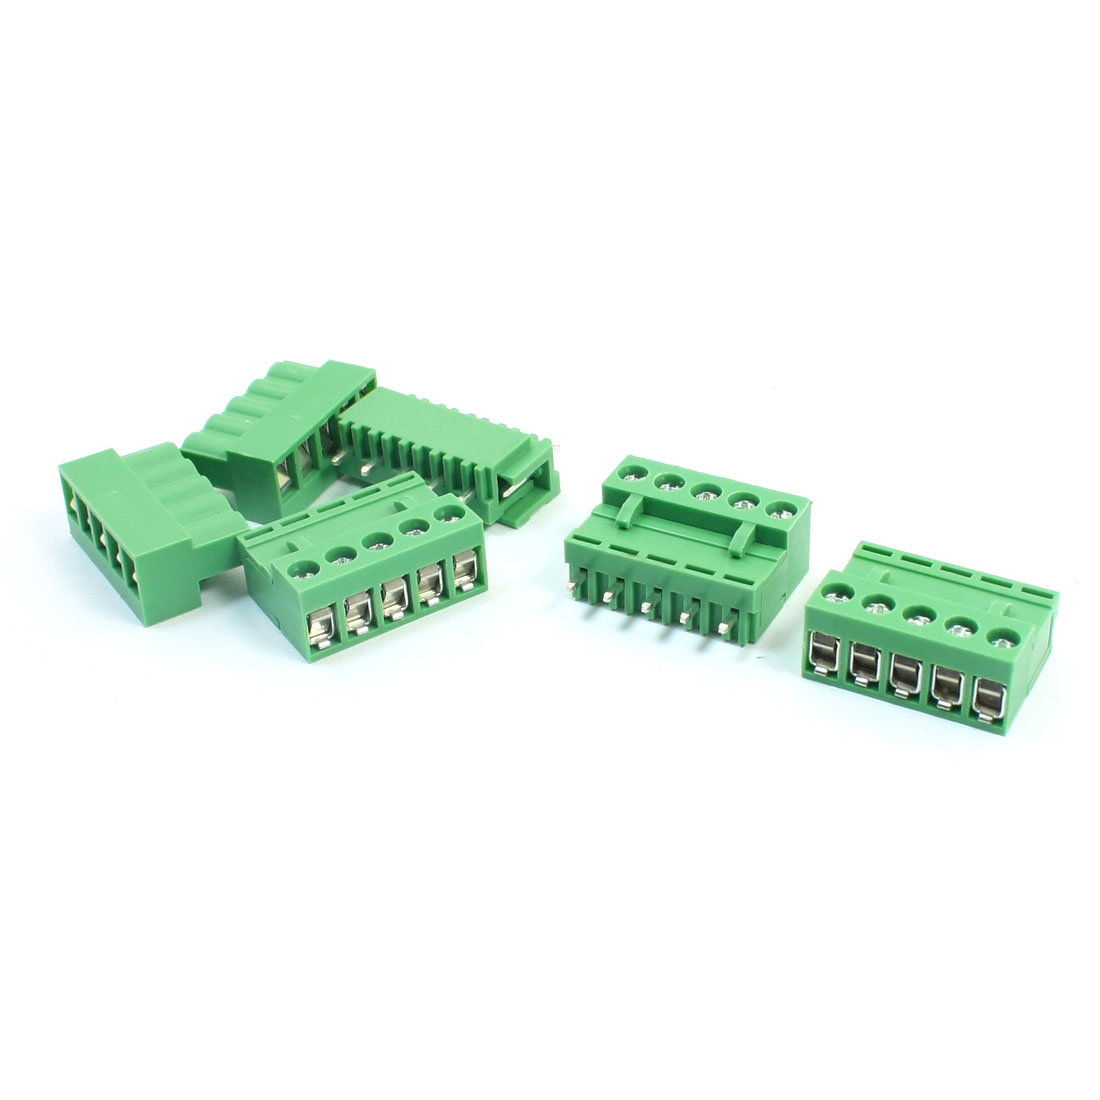 5Pcs 300V 10A 5.08mm Spacing 5P Pluggable Through Hole Mounting Green PCB Screw Terminal Barrier Block Connector